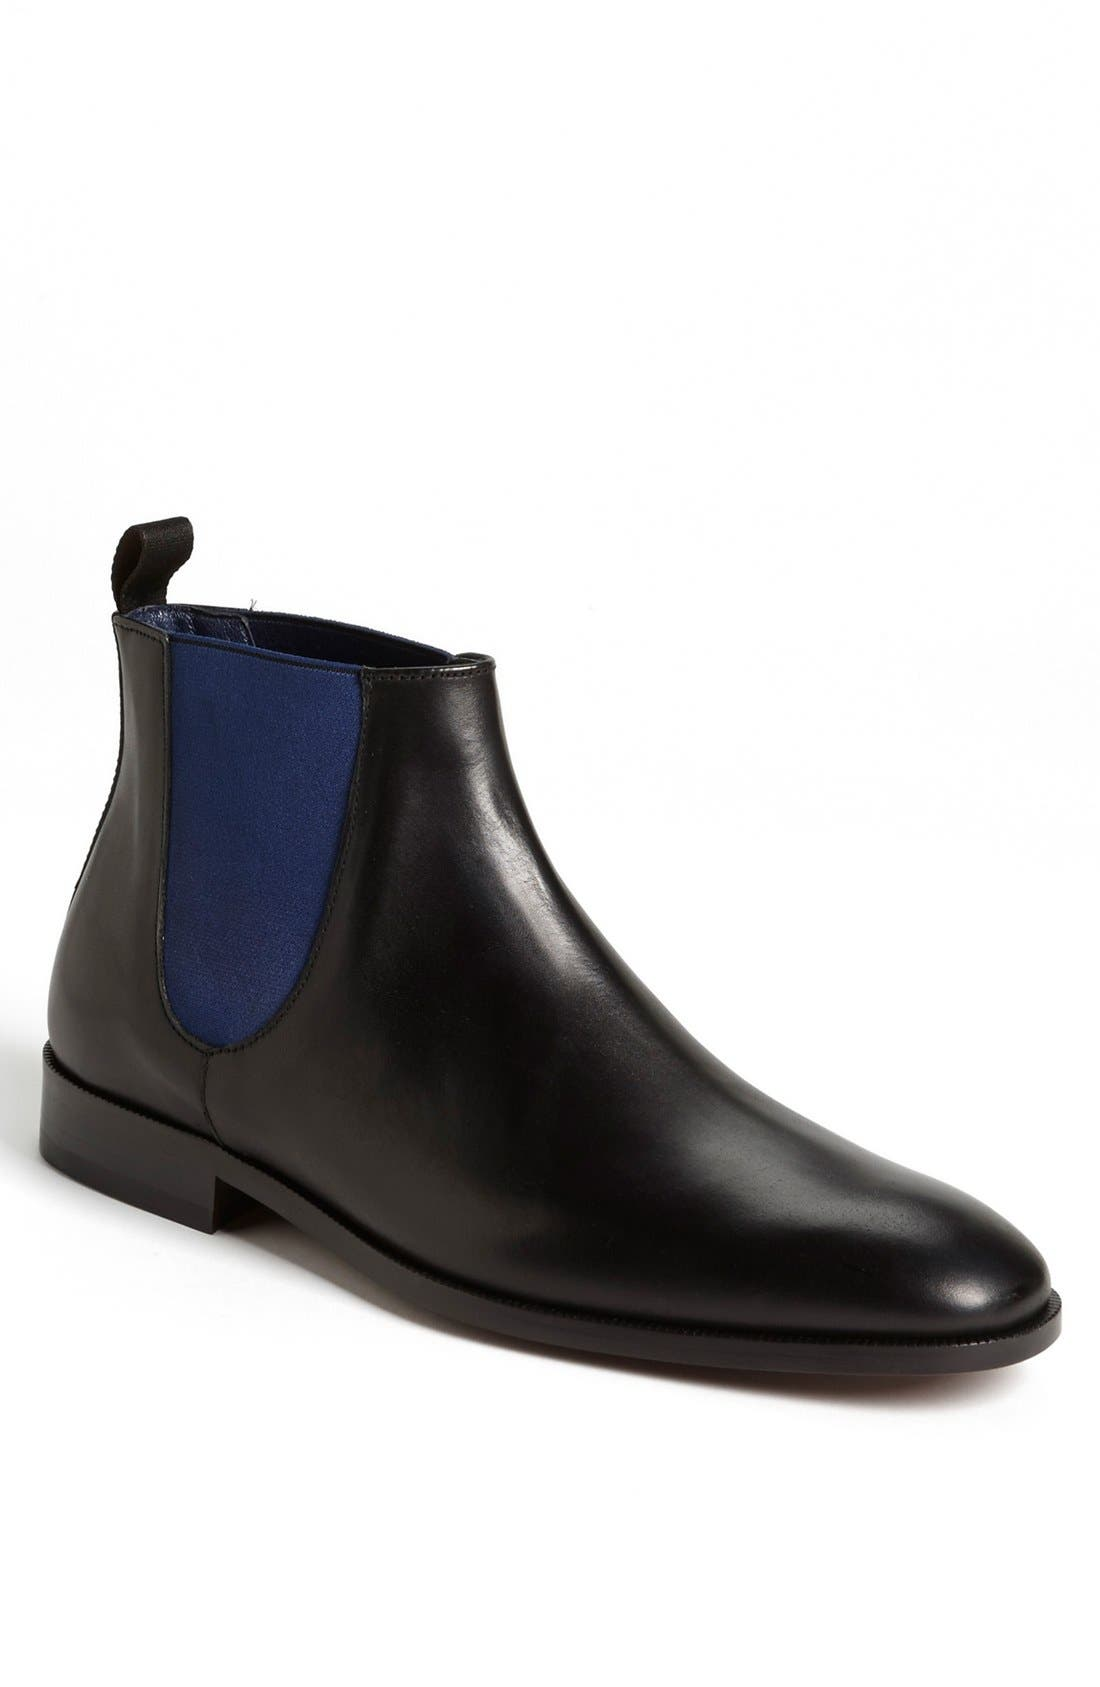 Main Image - To Boot New York 'Brent' Chelsea Boot